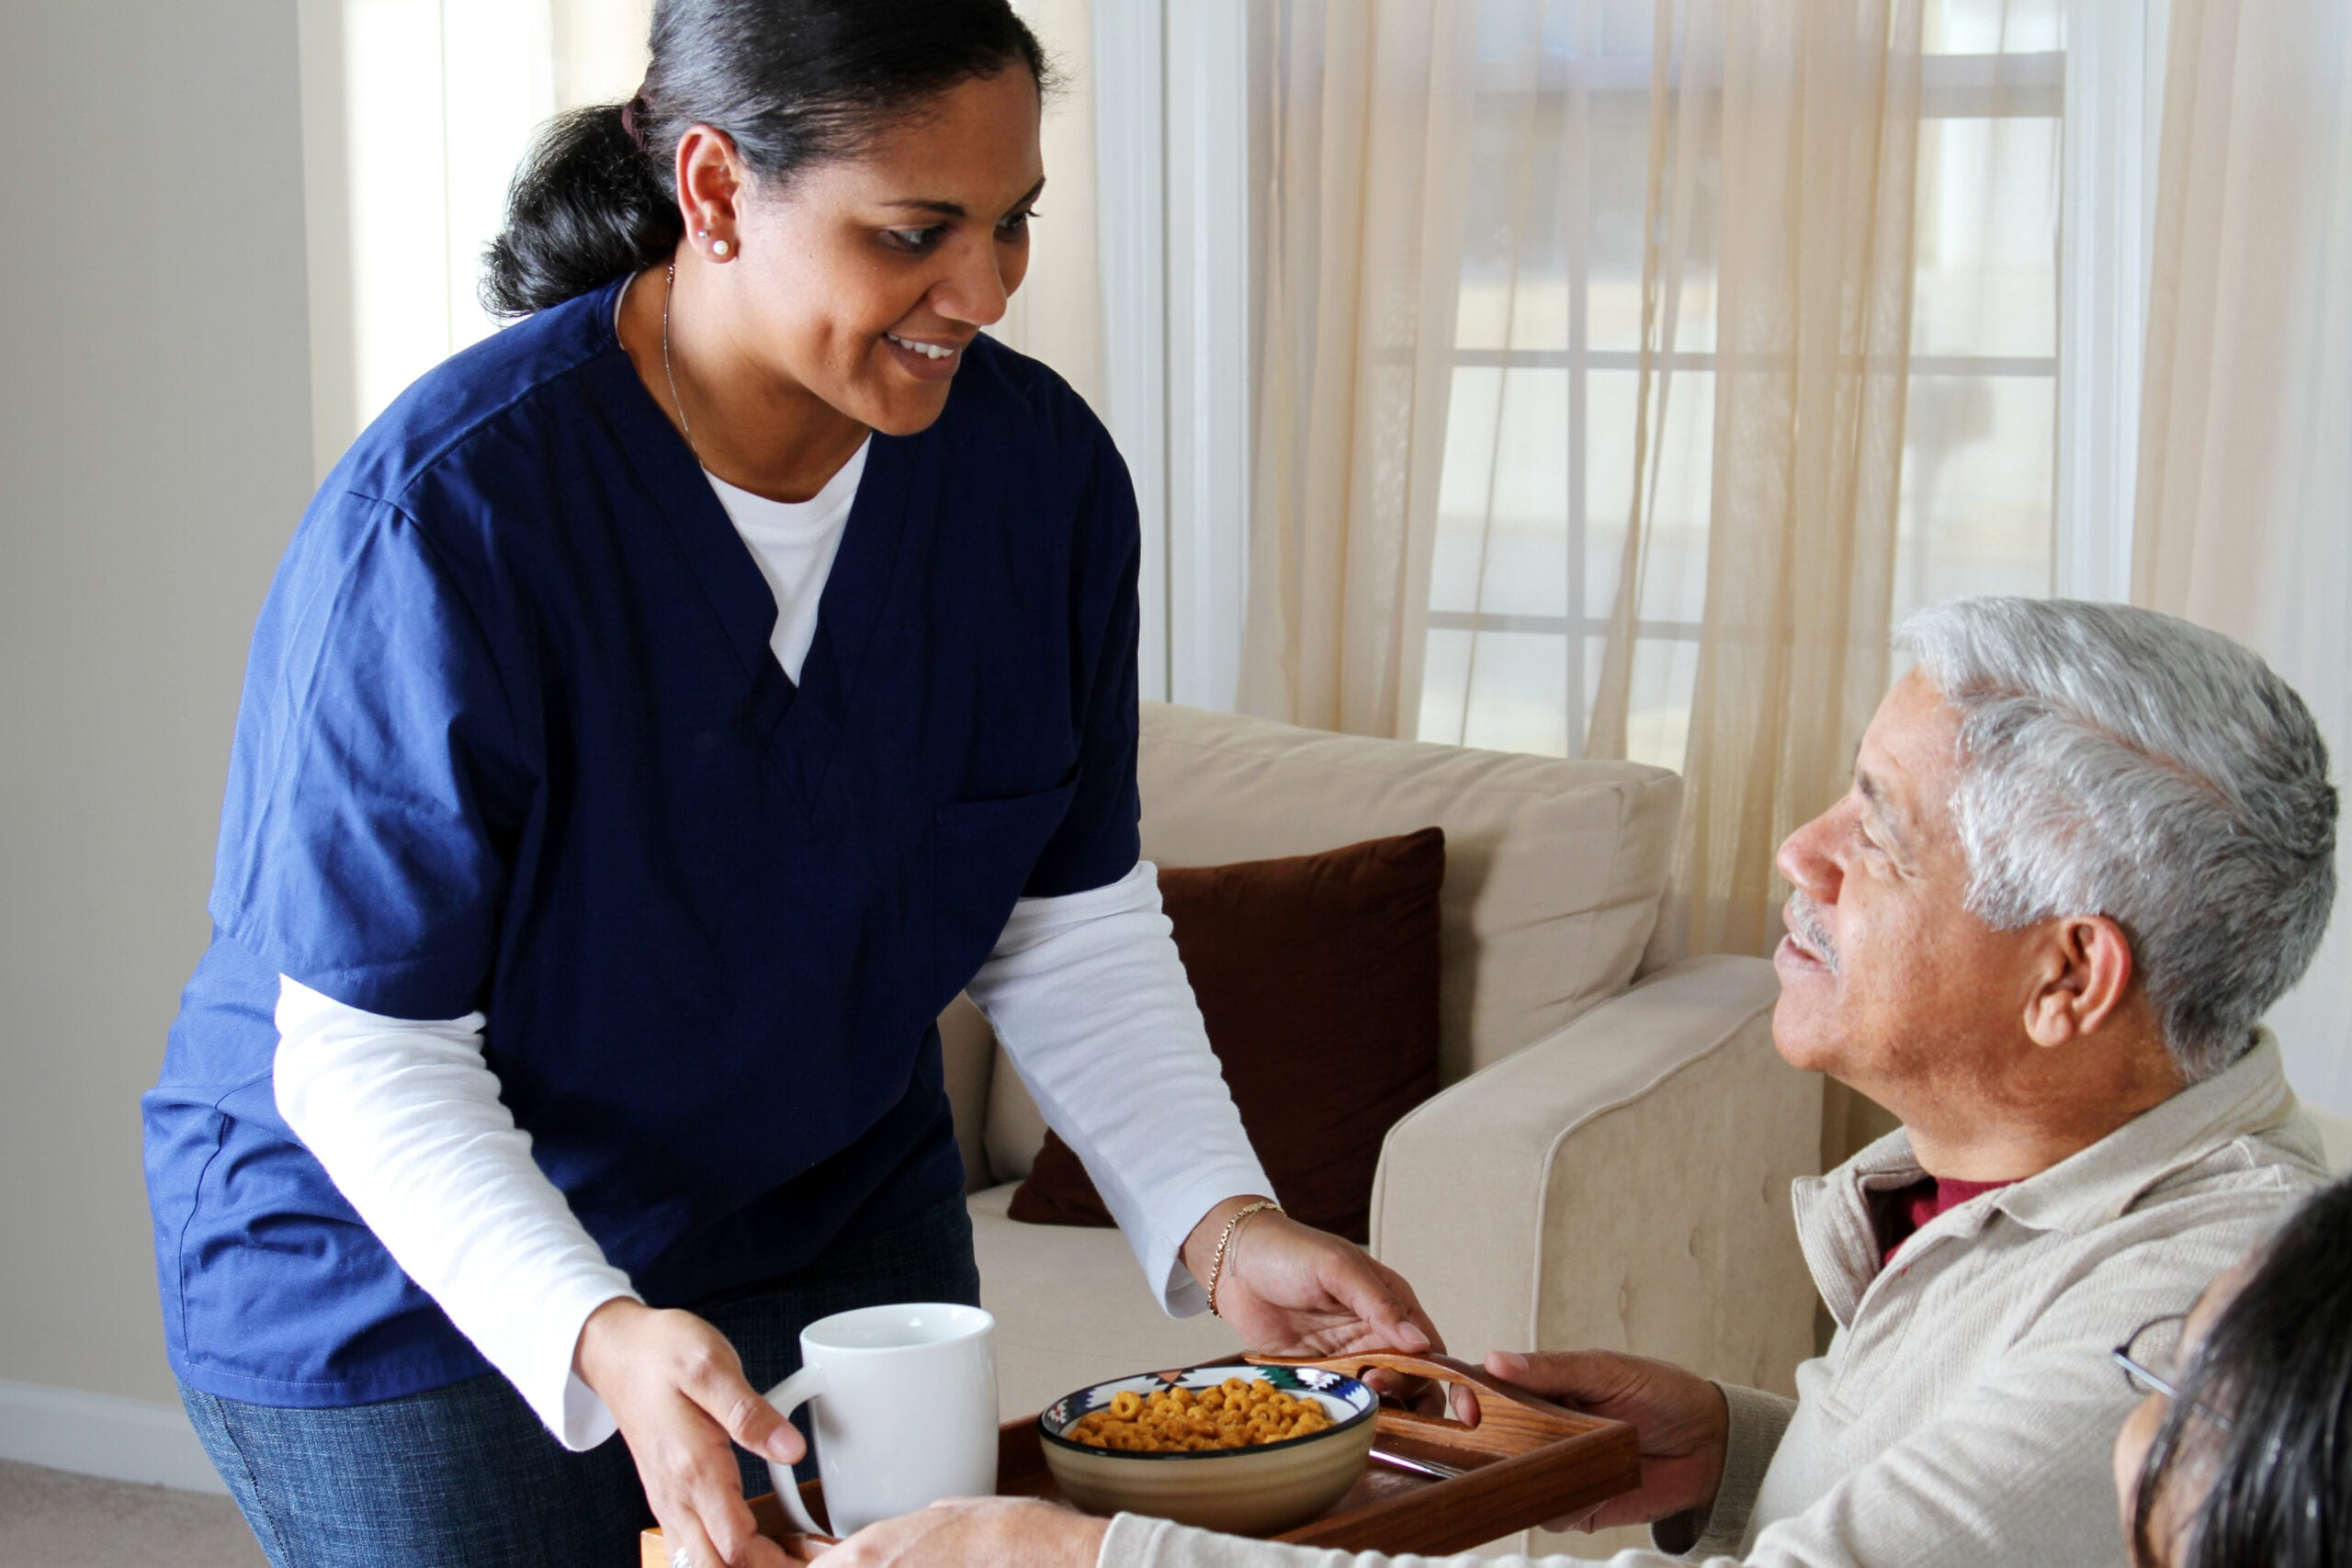 Long-term care facilities and nursing home staffing